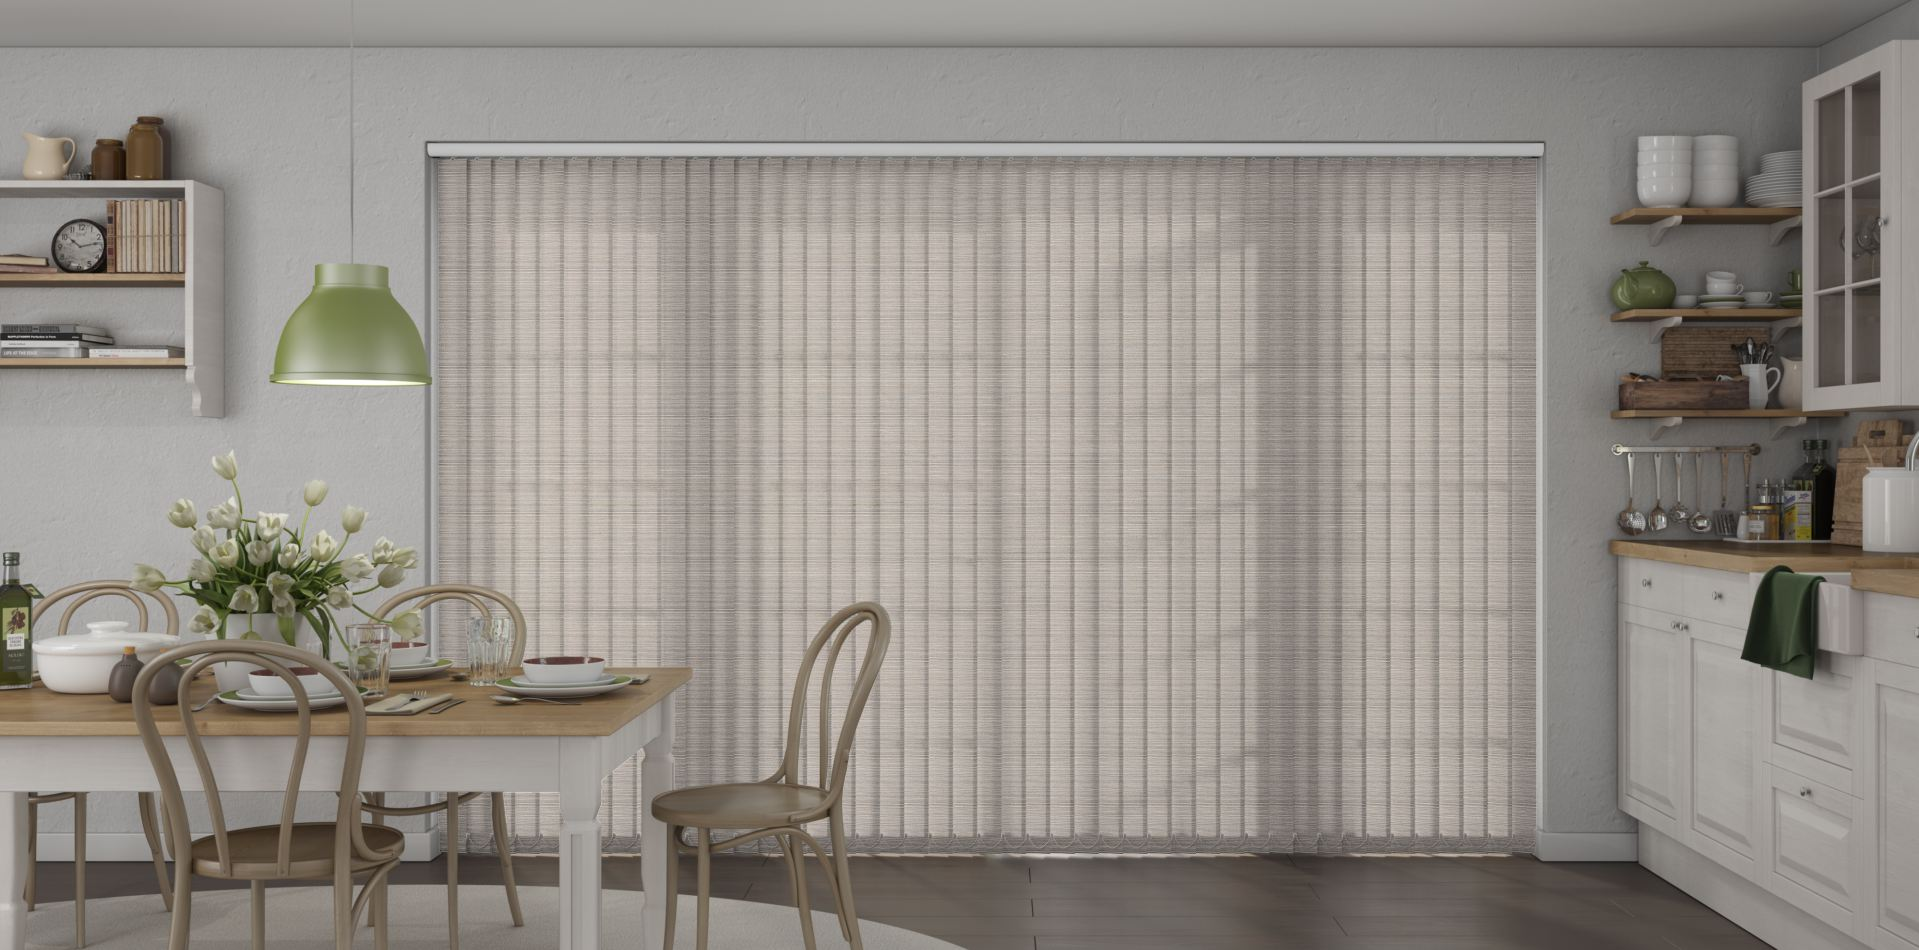 Tree House Firefly Pearl Vertical Blinds in a kitchen